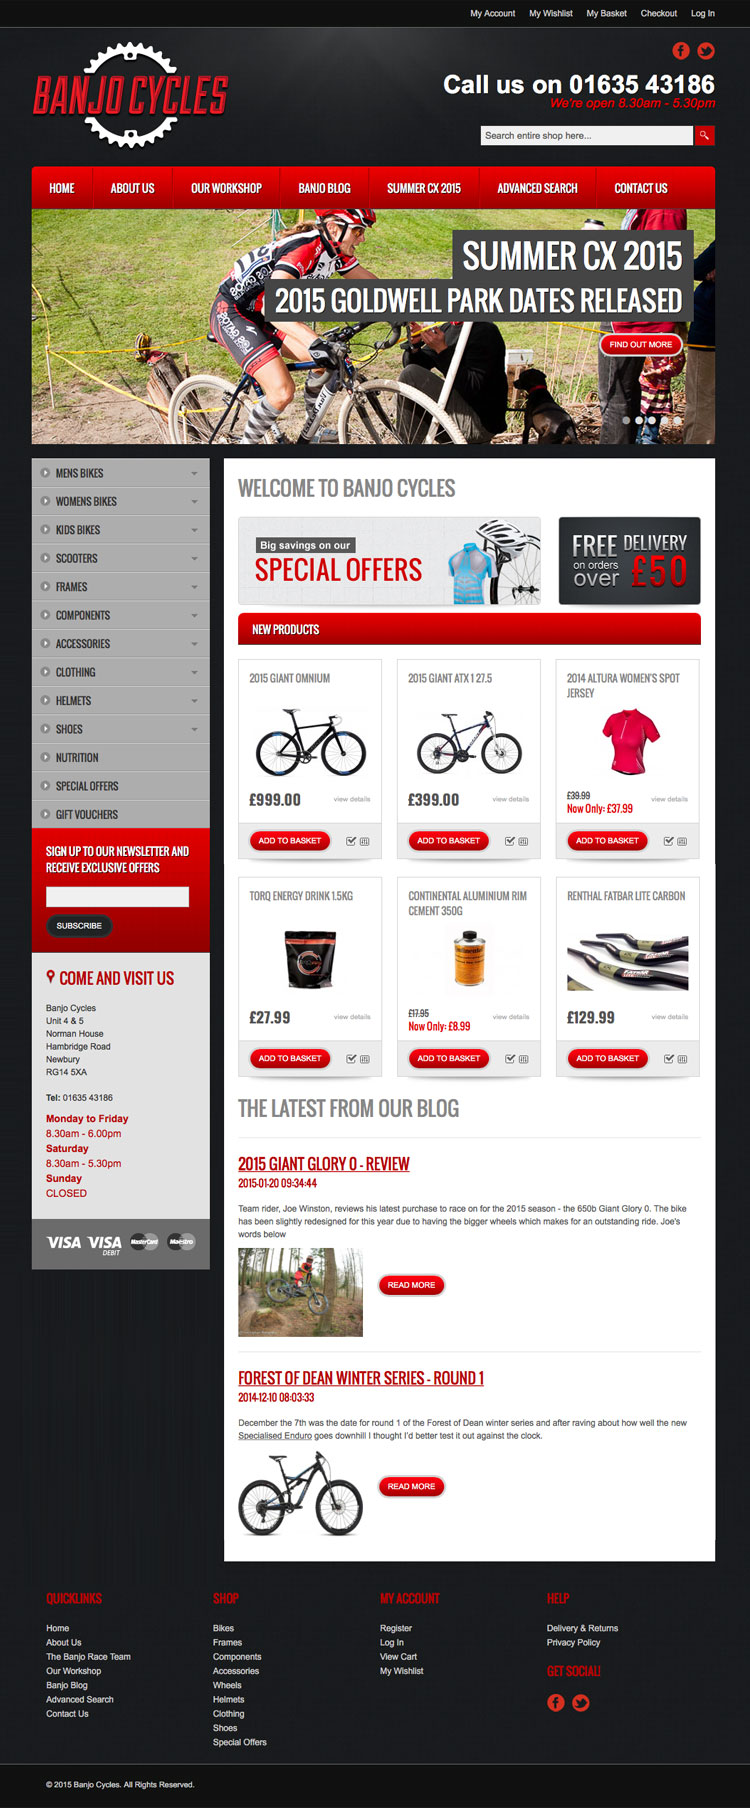 Banjo Cycles website